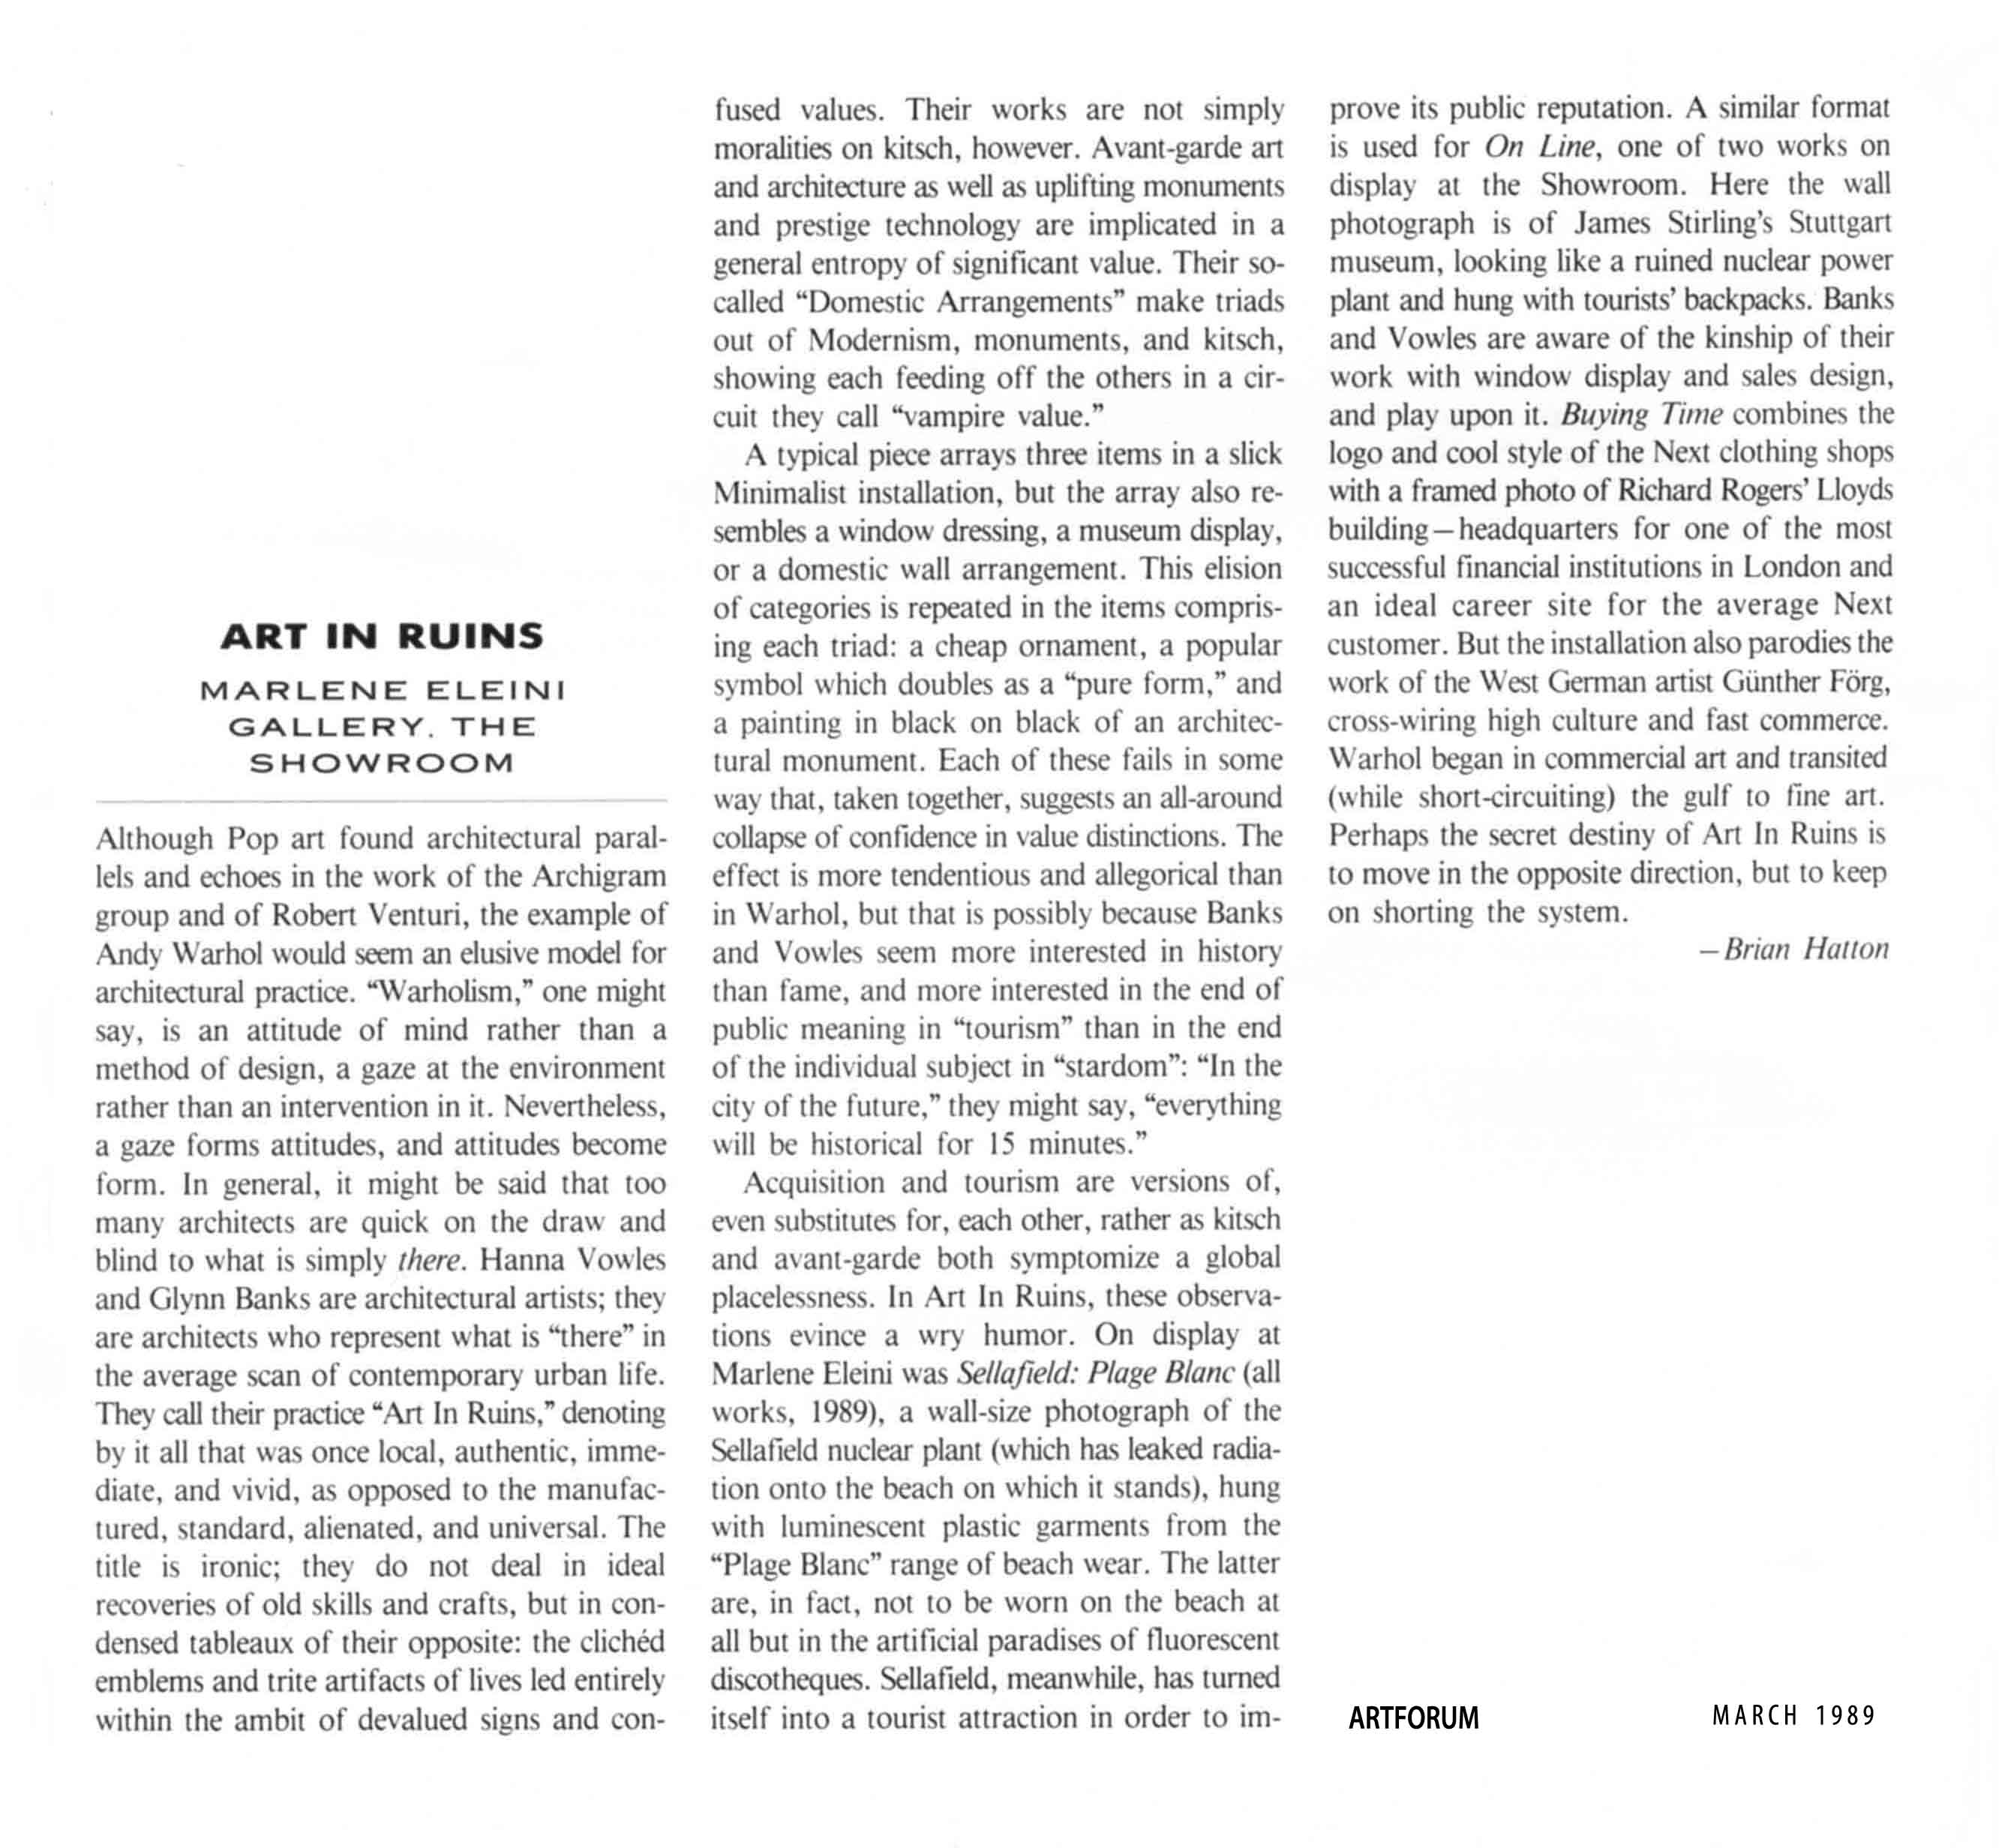 Brian Hatton - ArtForum Review of Art in Ruins Showroom and Marlene Eleini 1989